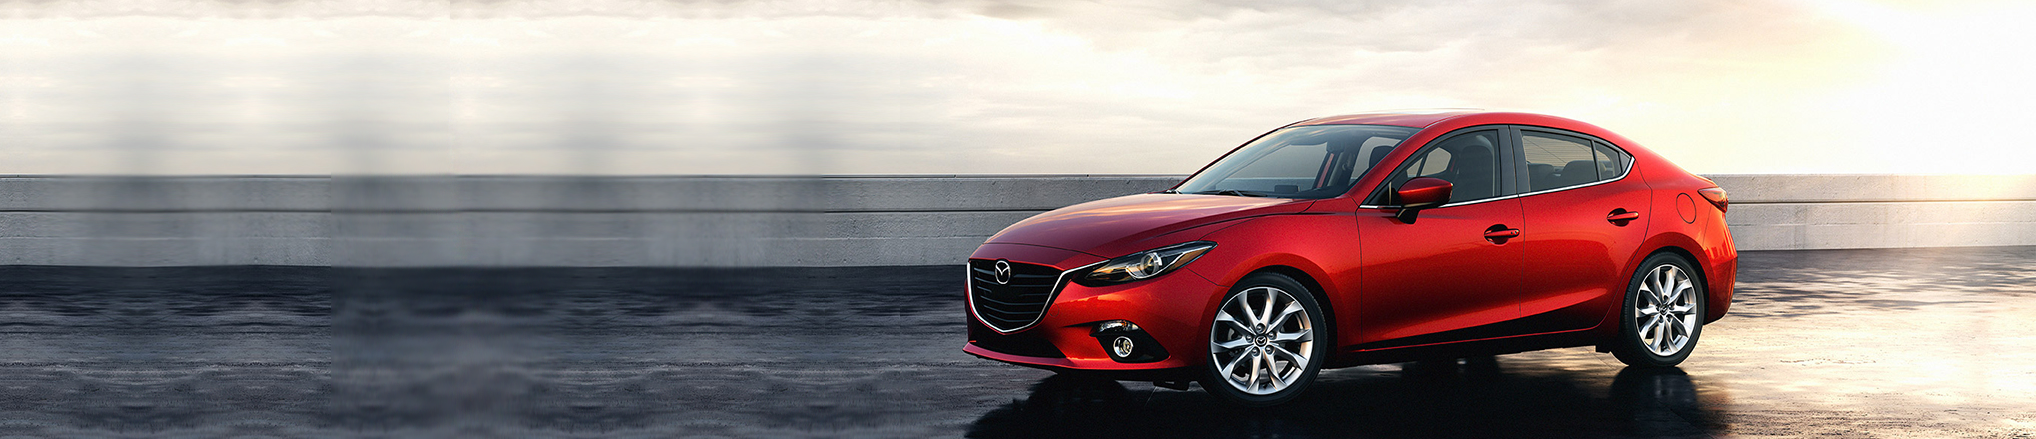 2014-Mazda-3-Sedan-red-car-pics